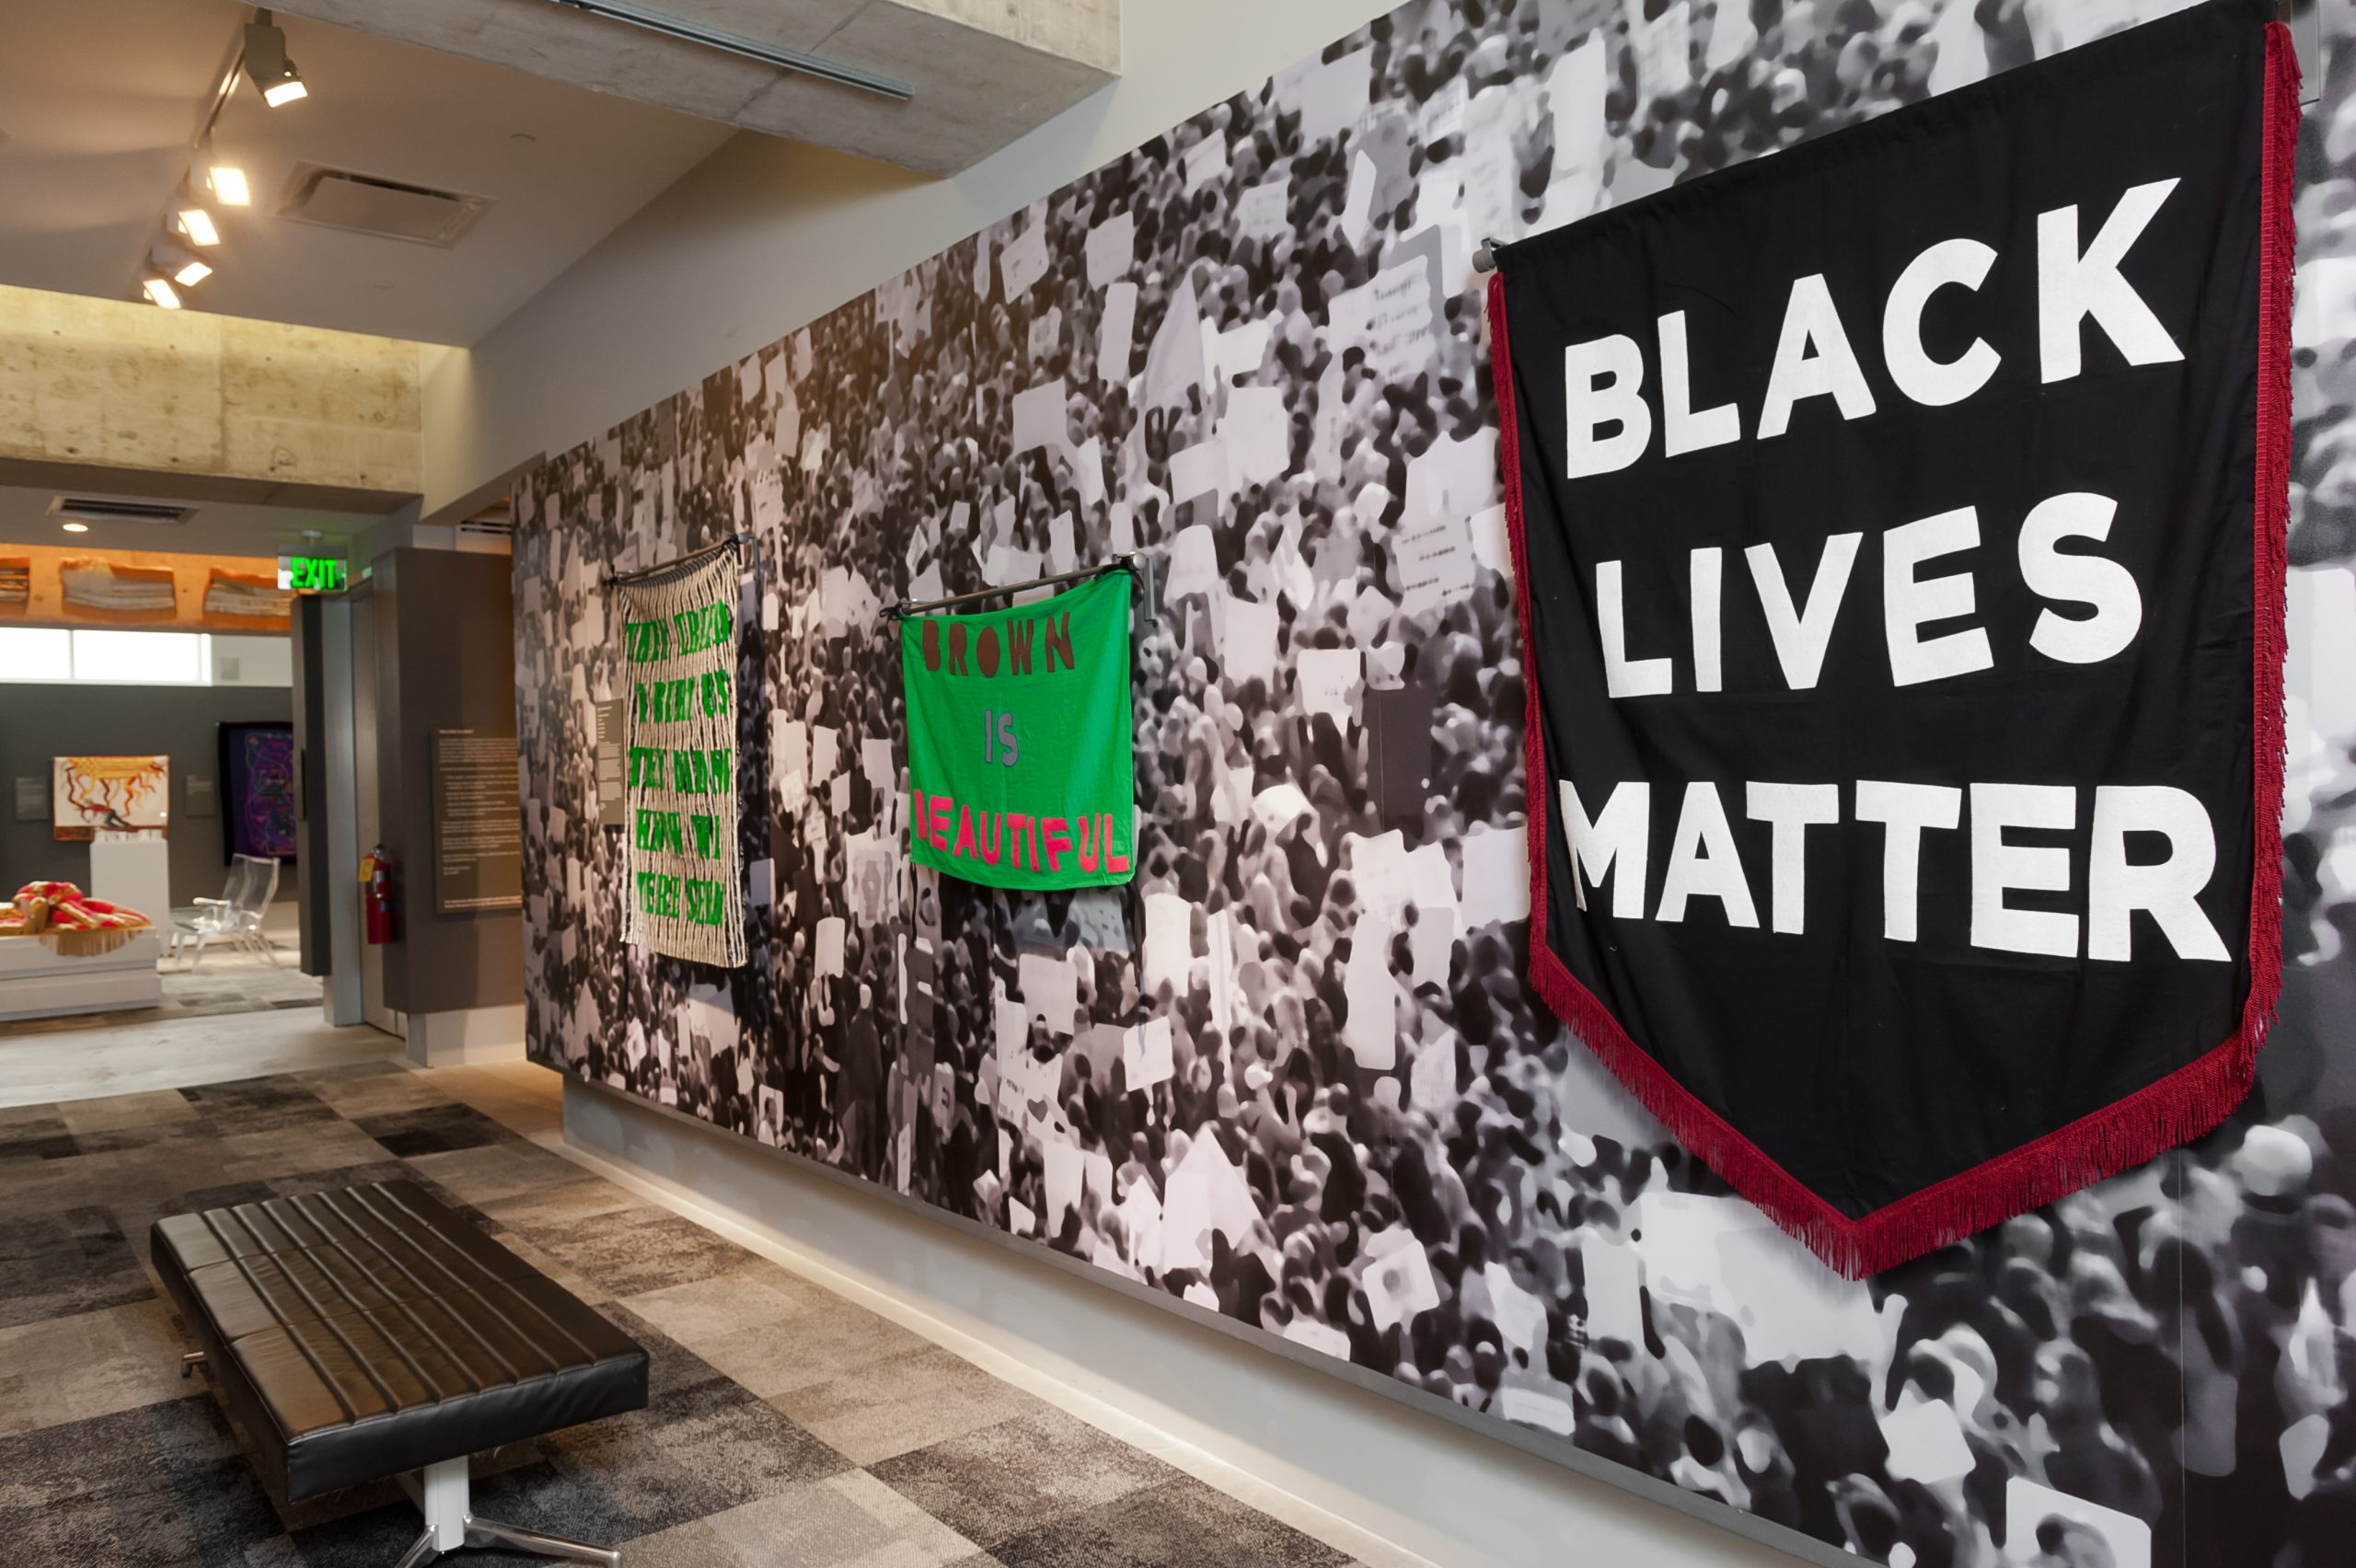 Aram Han Sifuentes' Protest Banner Learning Library installation view at the Luminary, St. Louis, 2018.